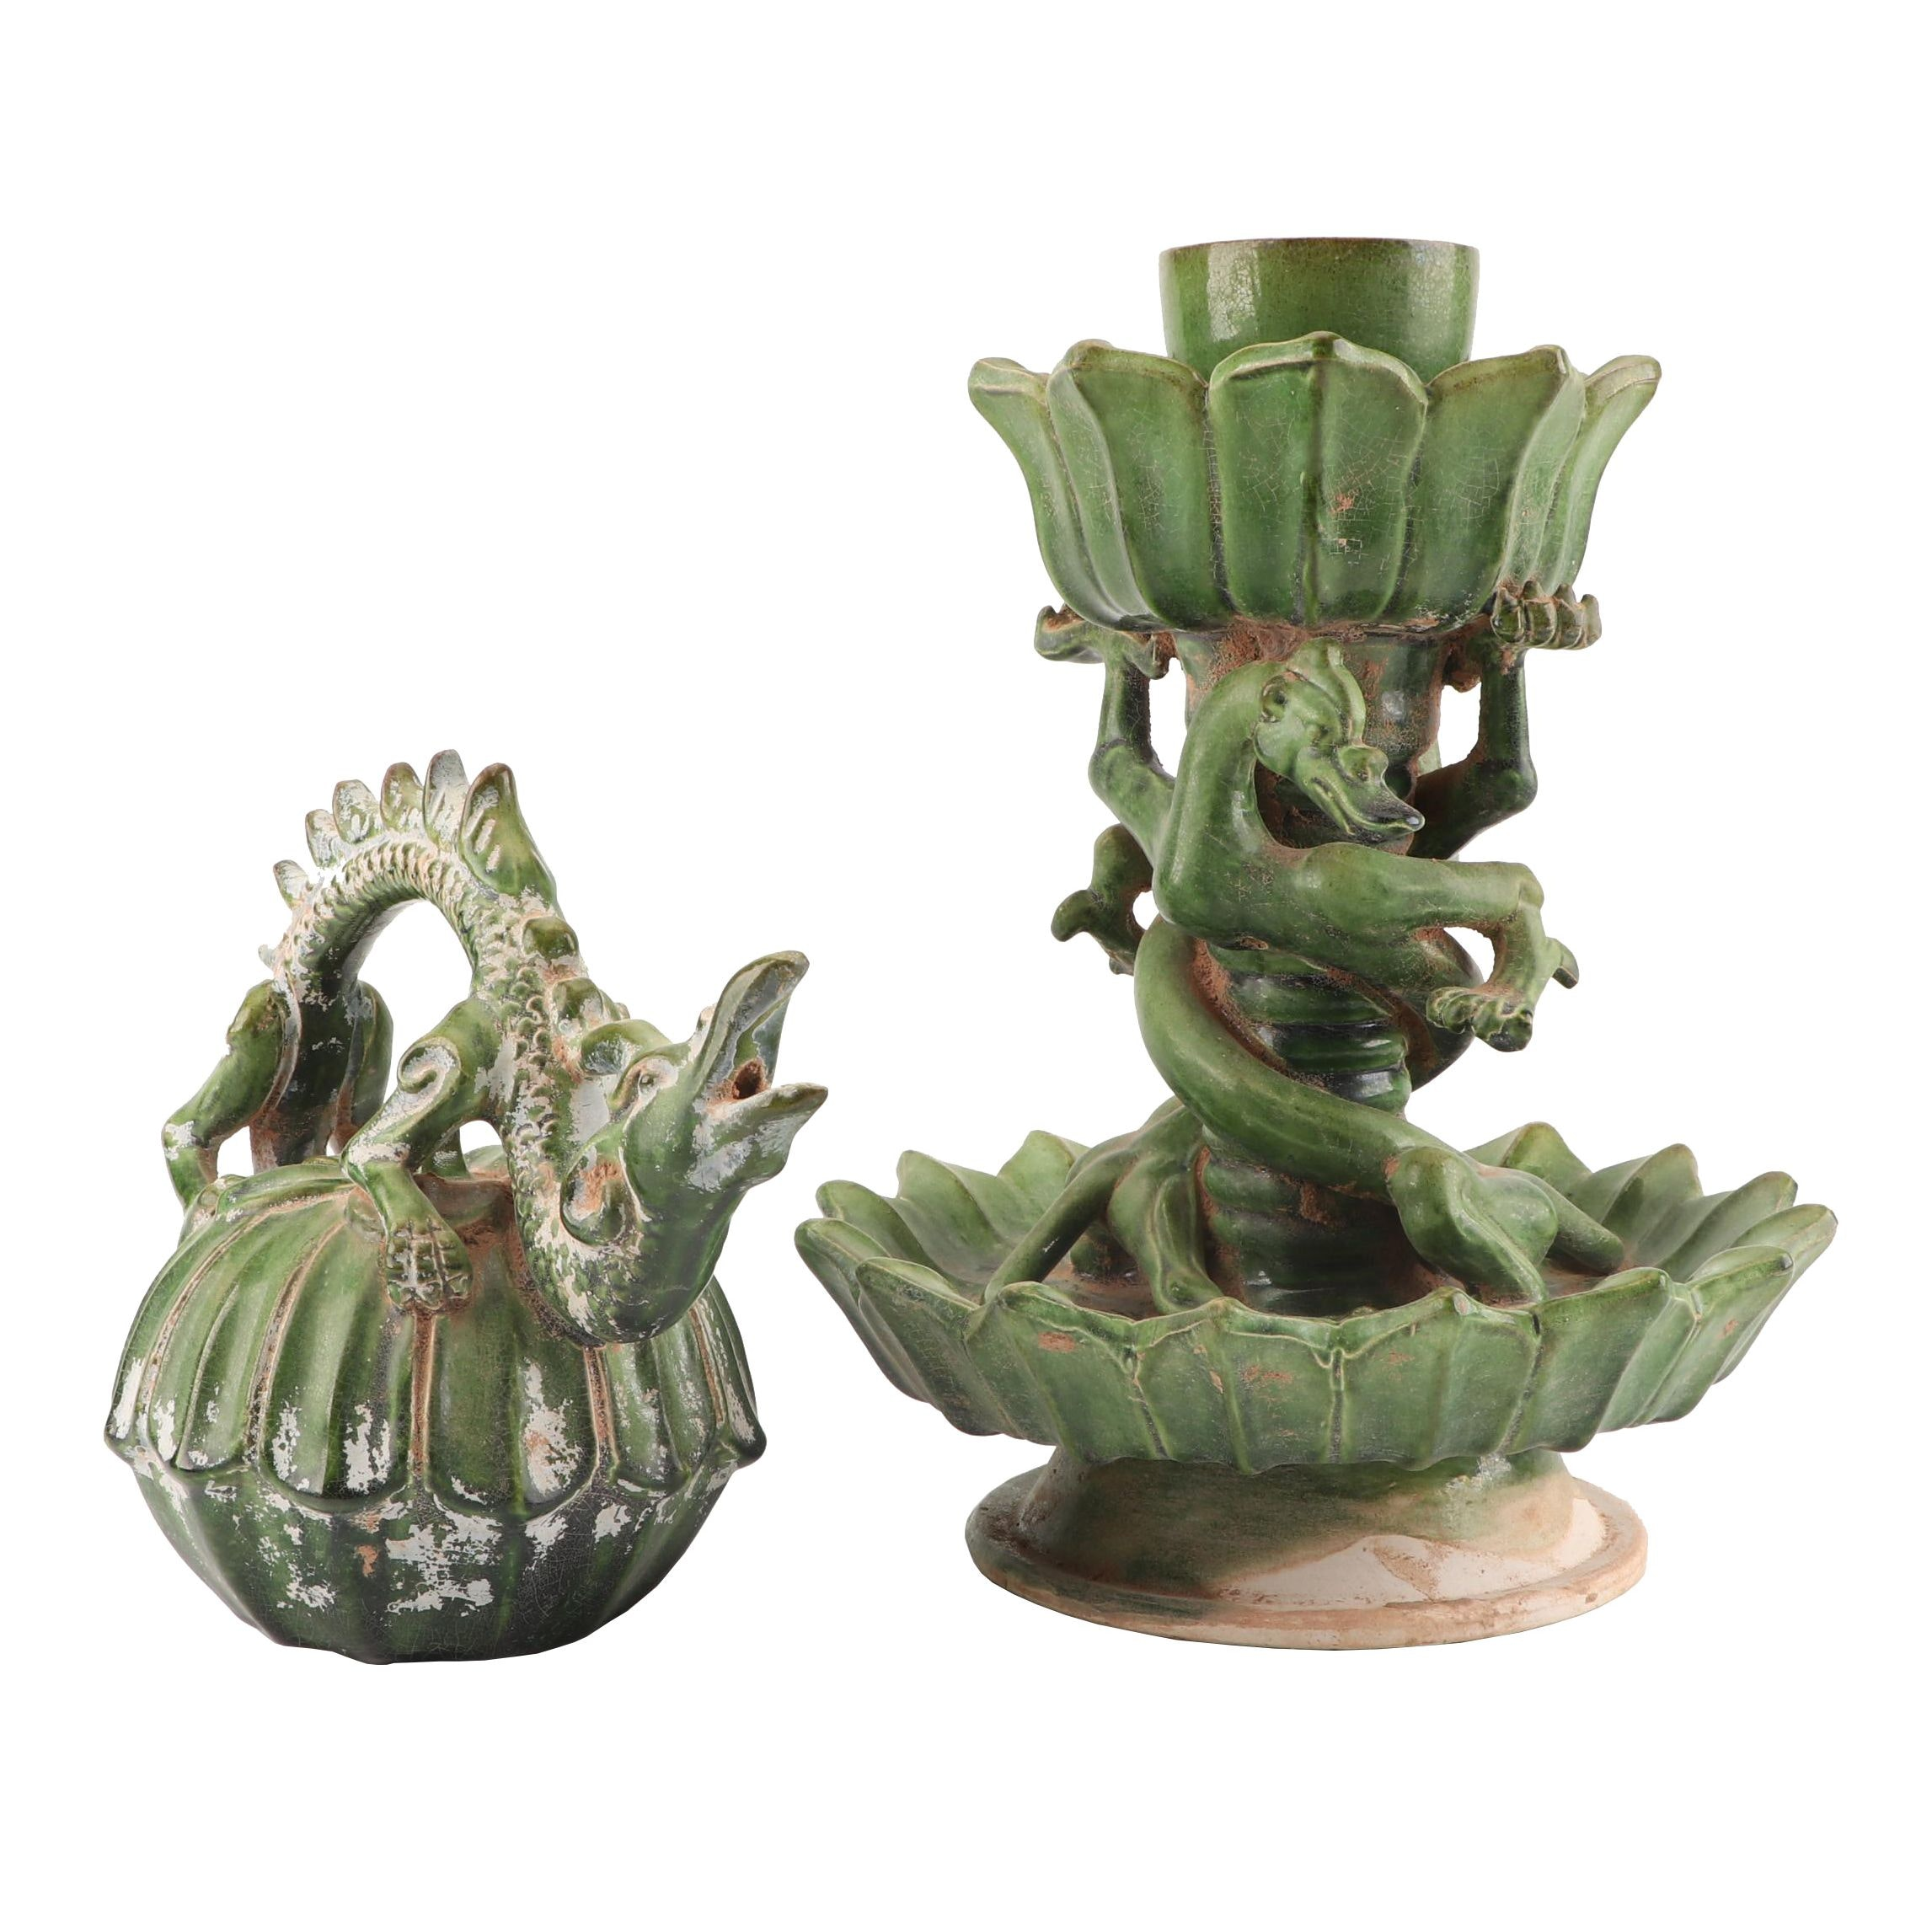 Chinese Dragon Themed Ceramic Candle Holder and Figurine